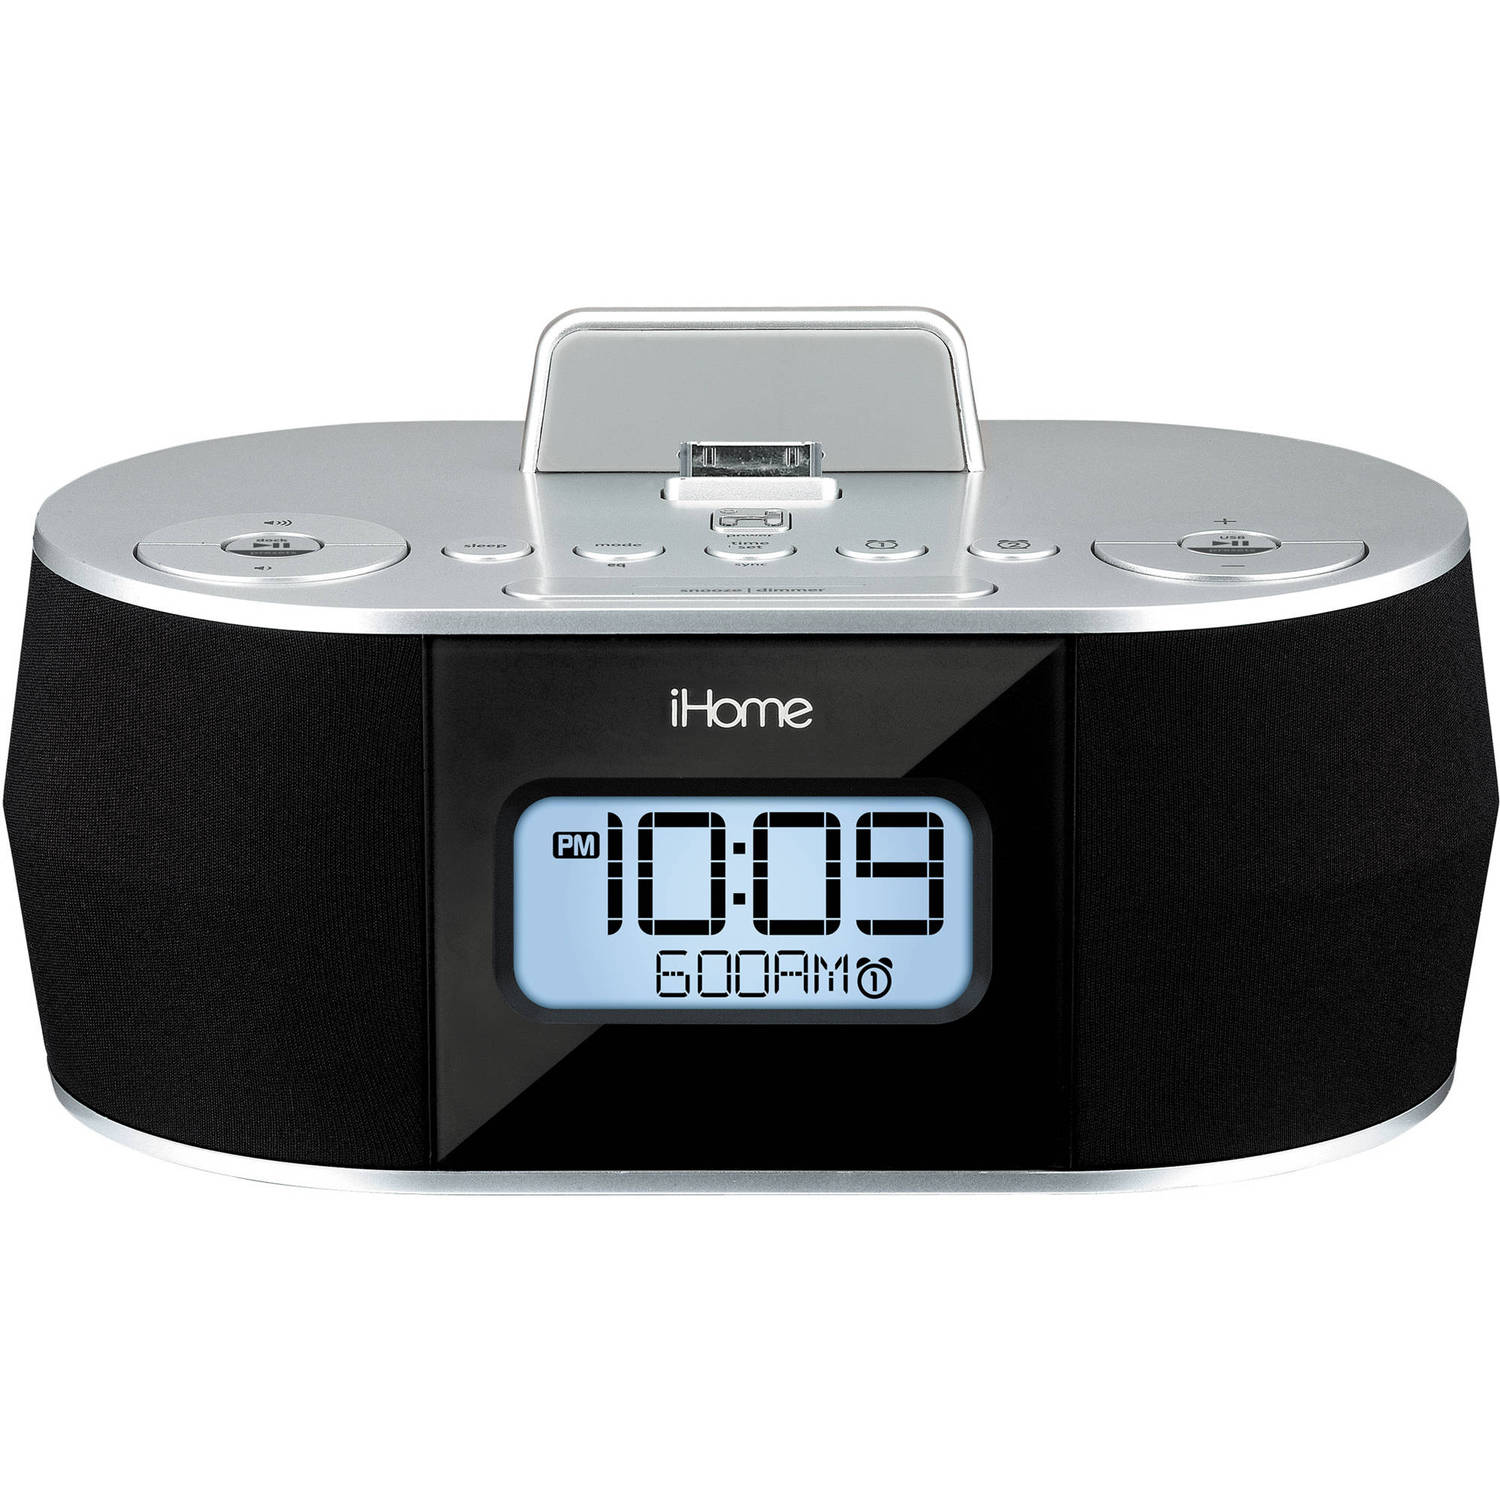 iHome iDN38 Dual Alarm FM Clock Radio for iPad/iPhone (Dock Not Compatible w/ iPhone 5/6 7 or any Lightning Models) USB Out Charging for all New iPhone Lightning Models (Certified Refurbished)